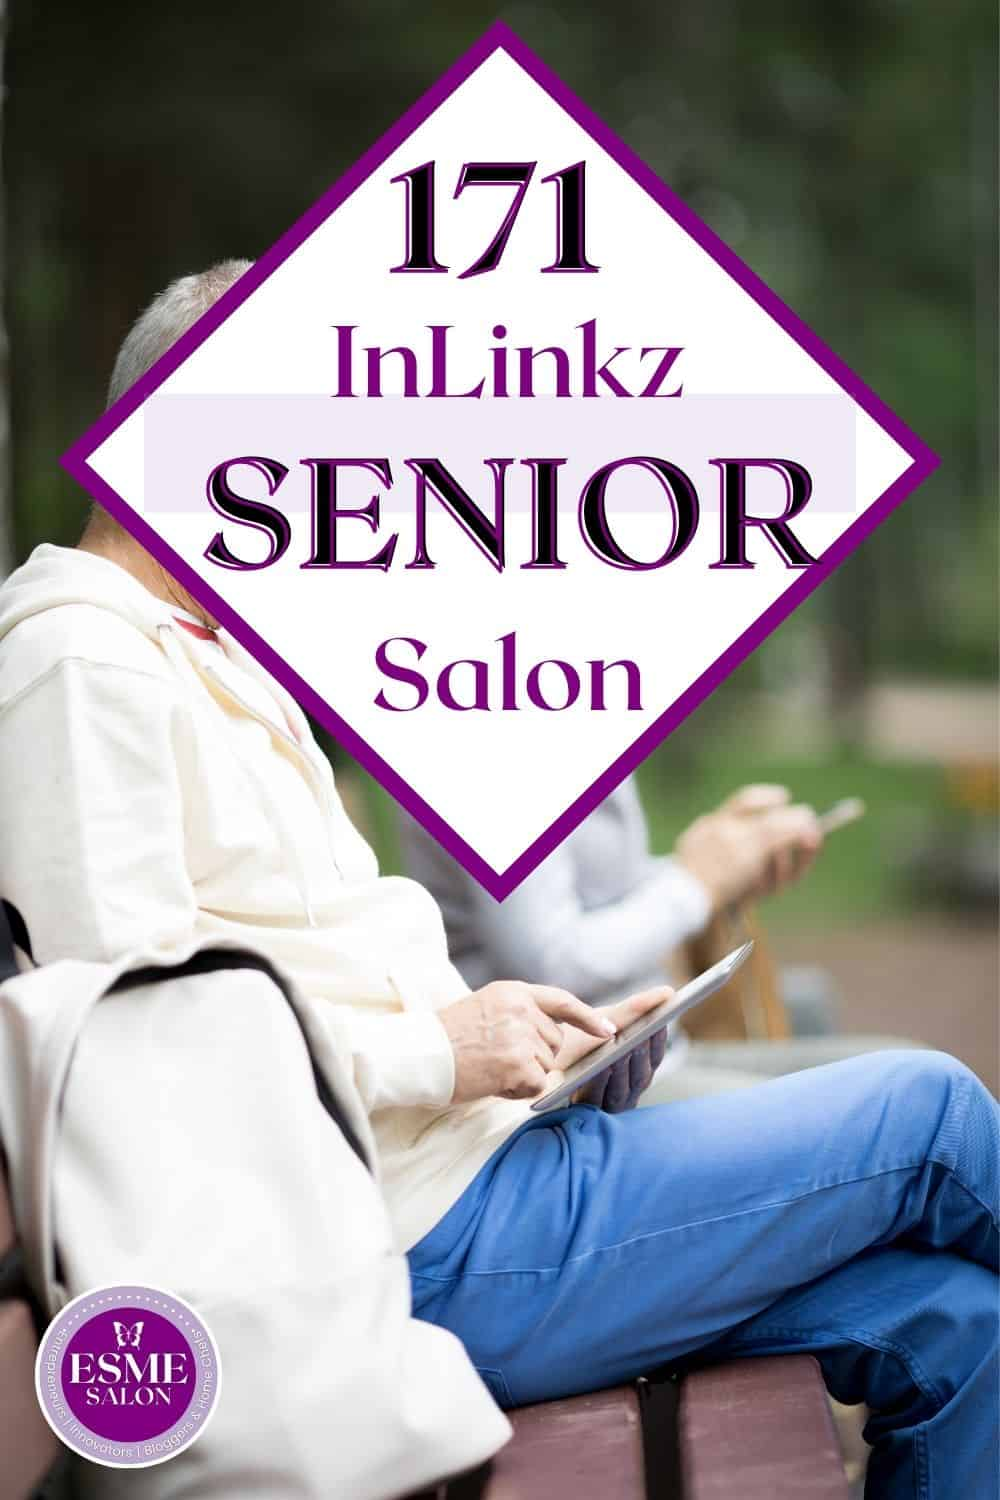 Two seniors sitting on bench with mobile phone ready to participate at InLinkz Join us at 171 Senior Salon